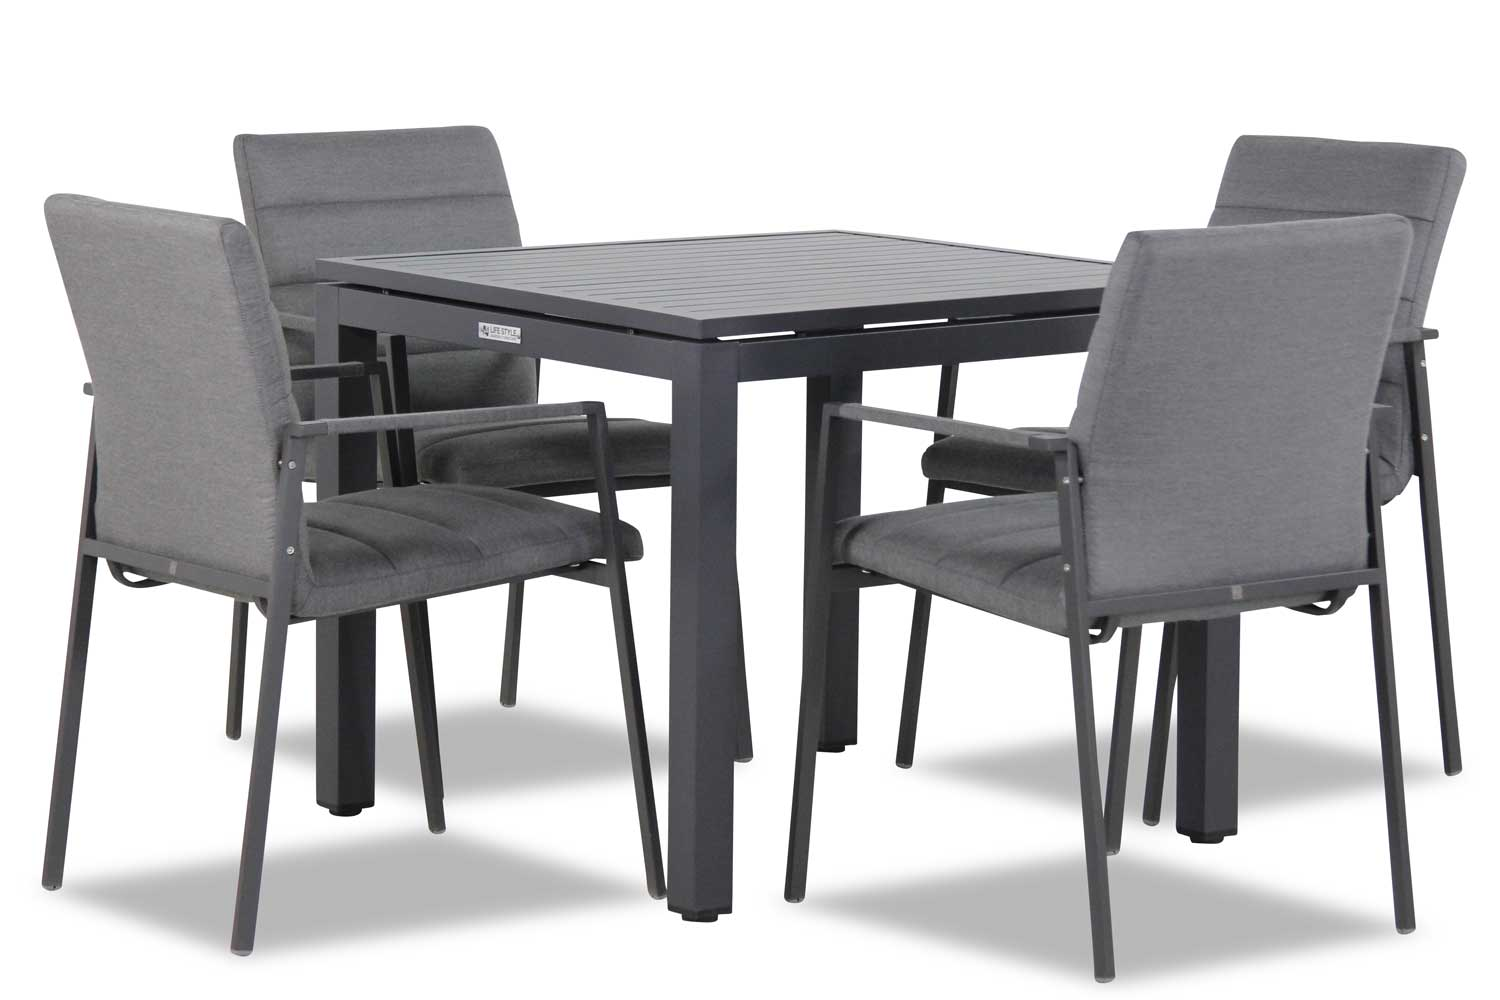 4 Seasons Outdoor Panama/Concept 90 cm dining tuinset 5-delig